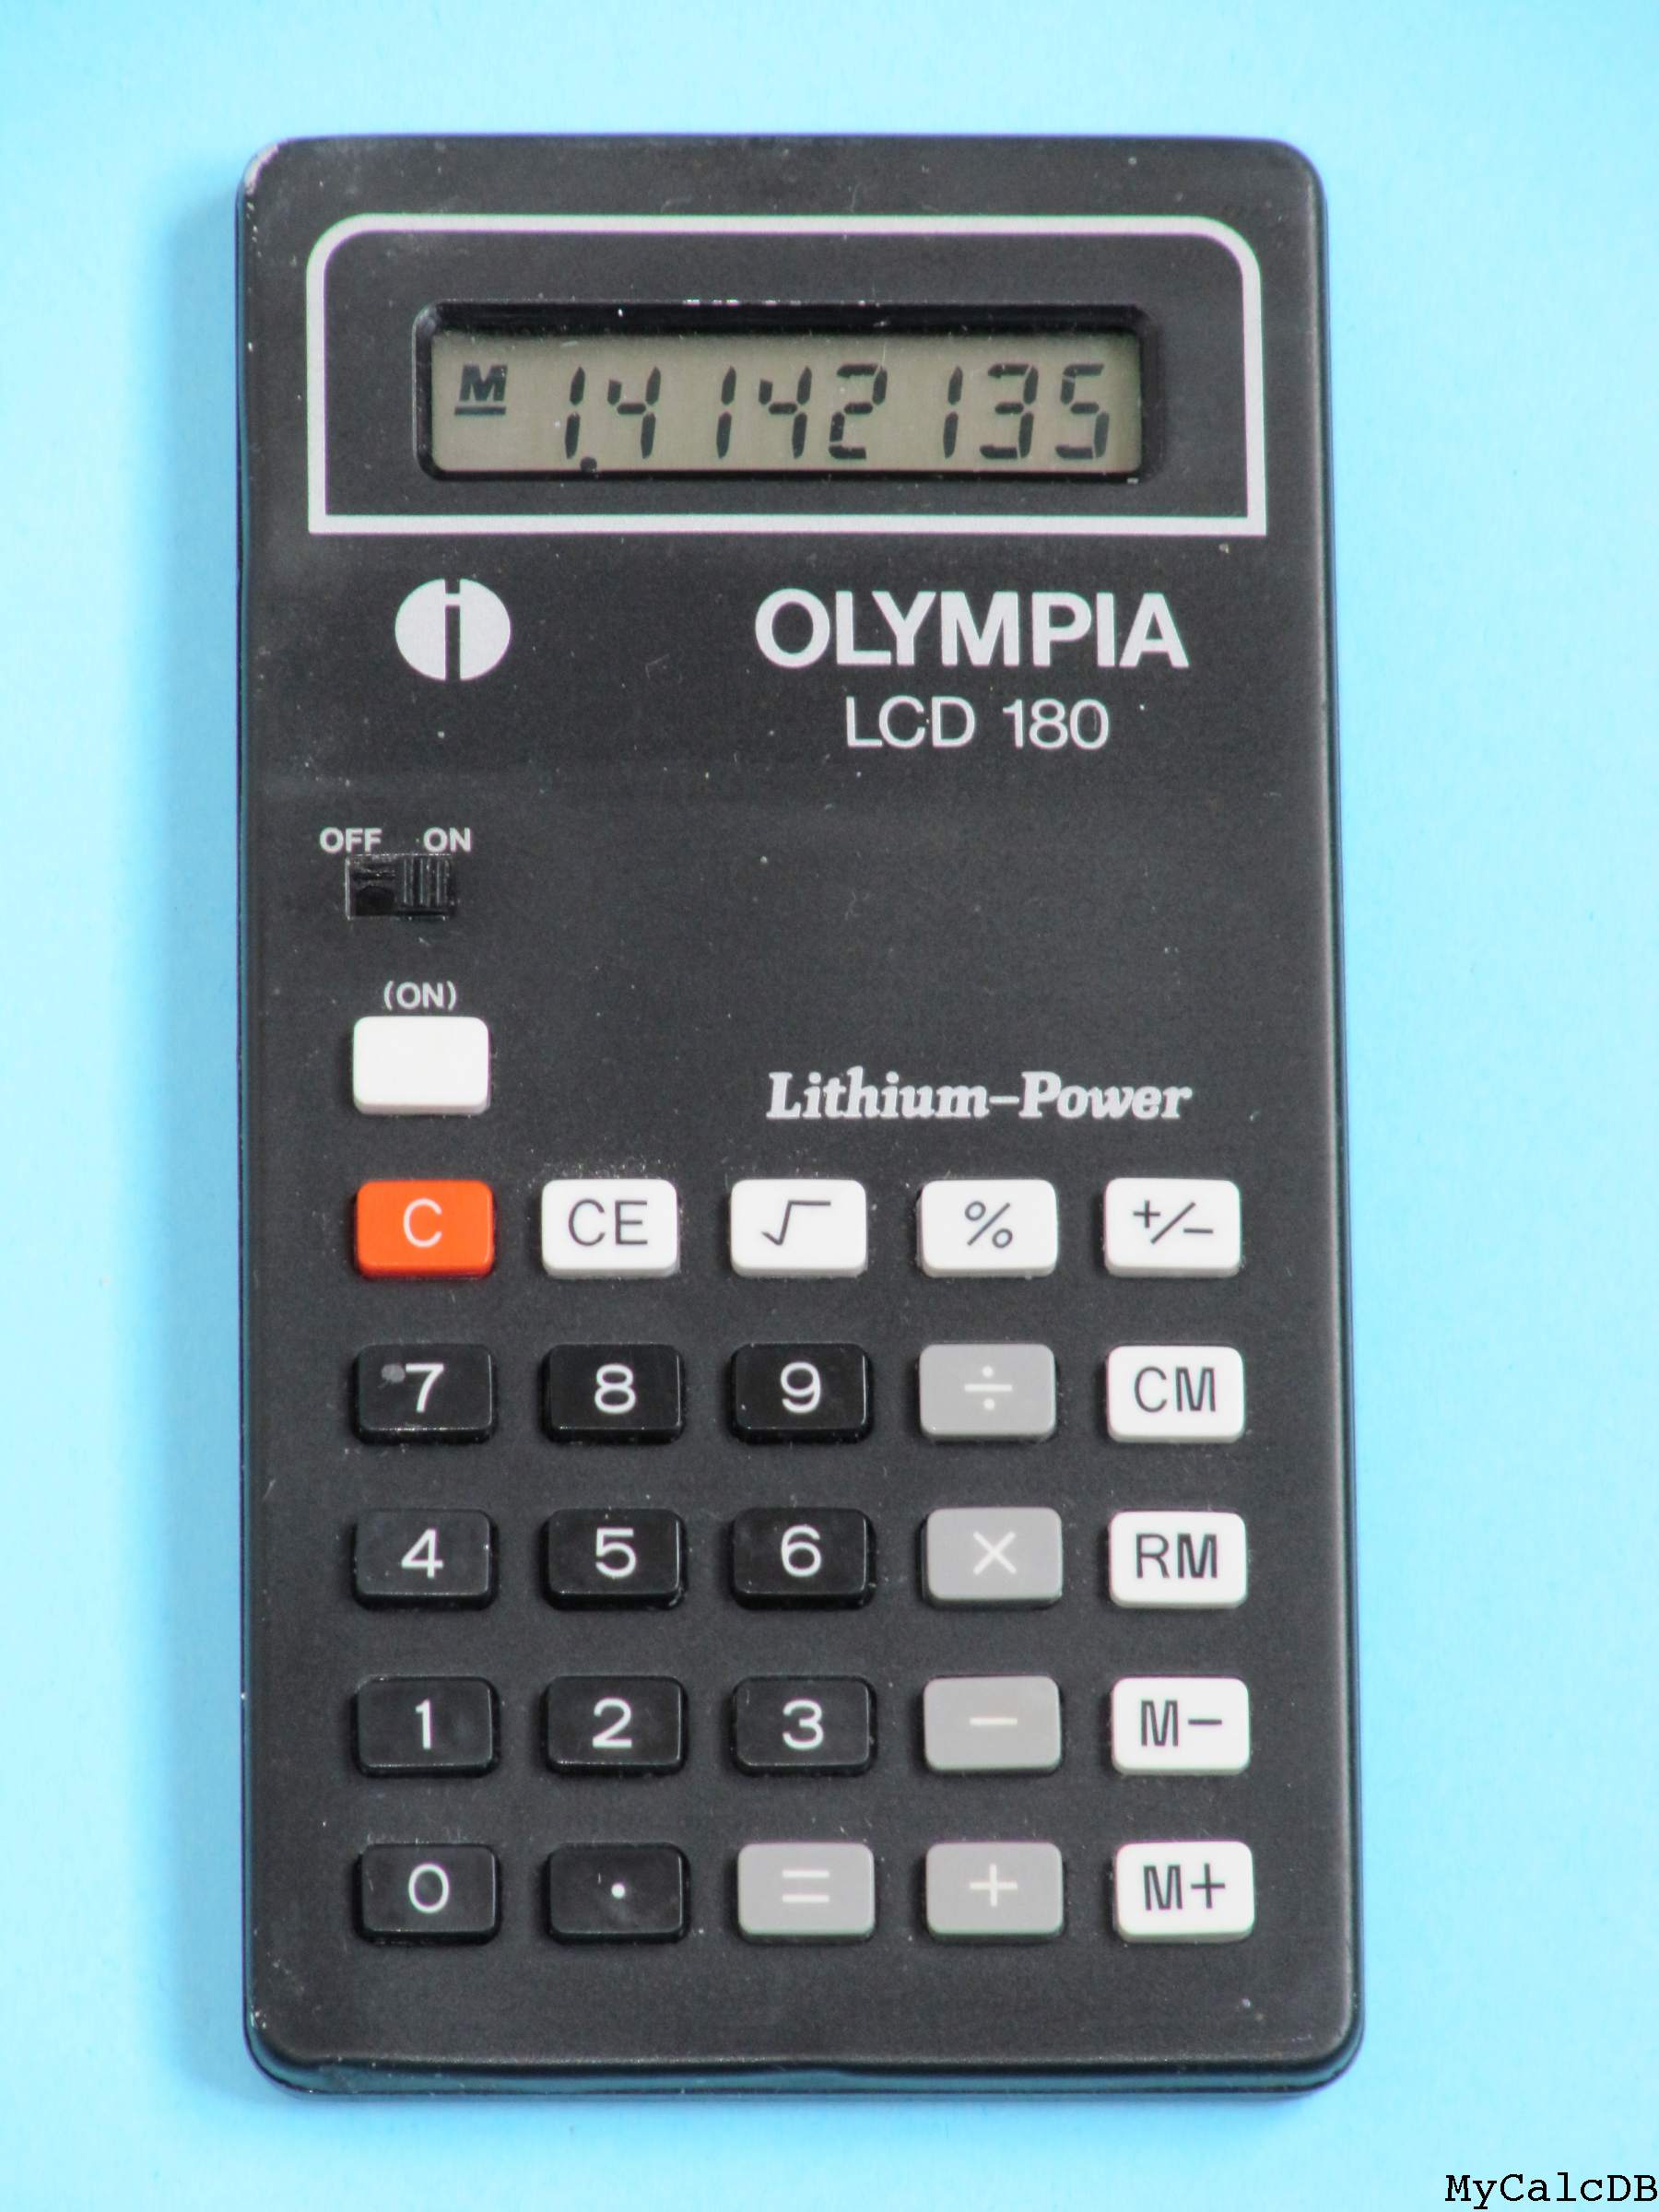 Olympia LCD 180